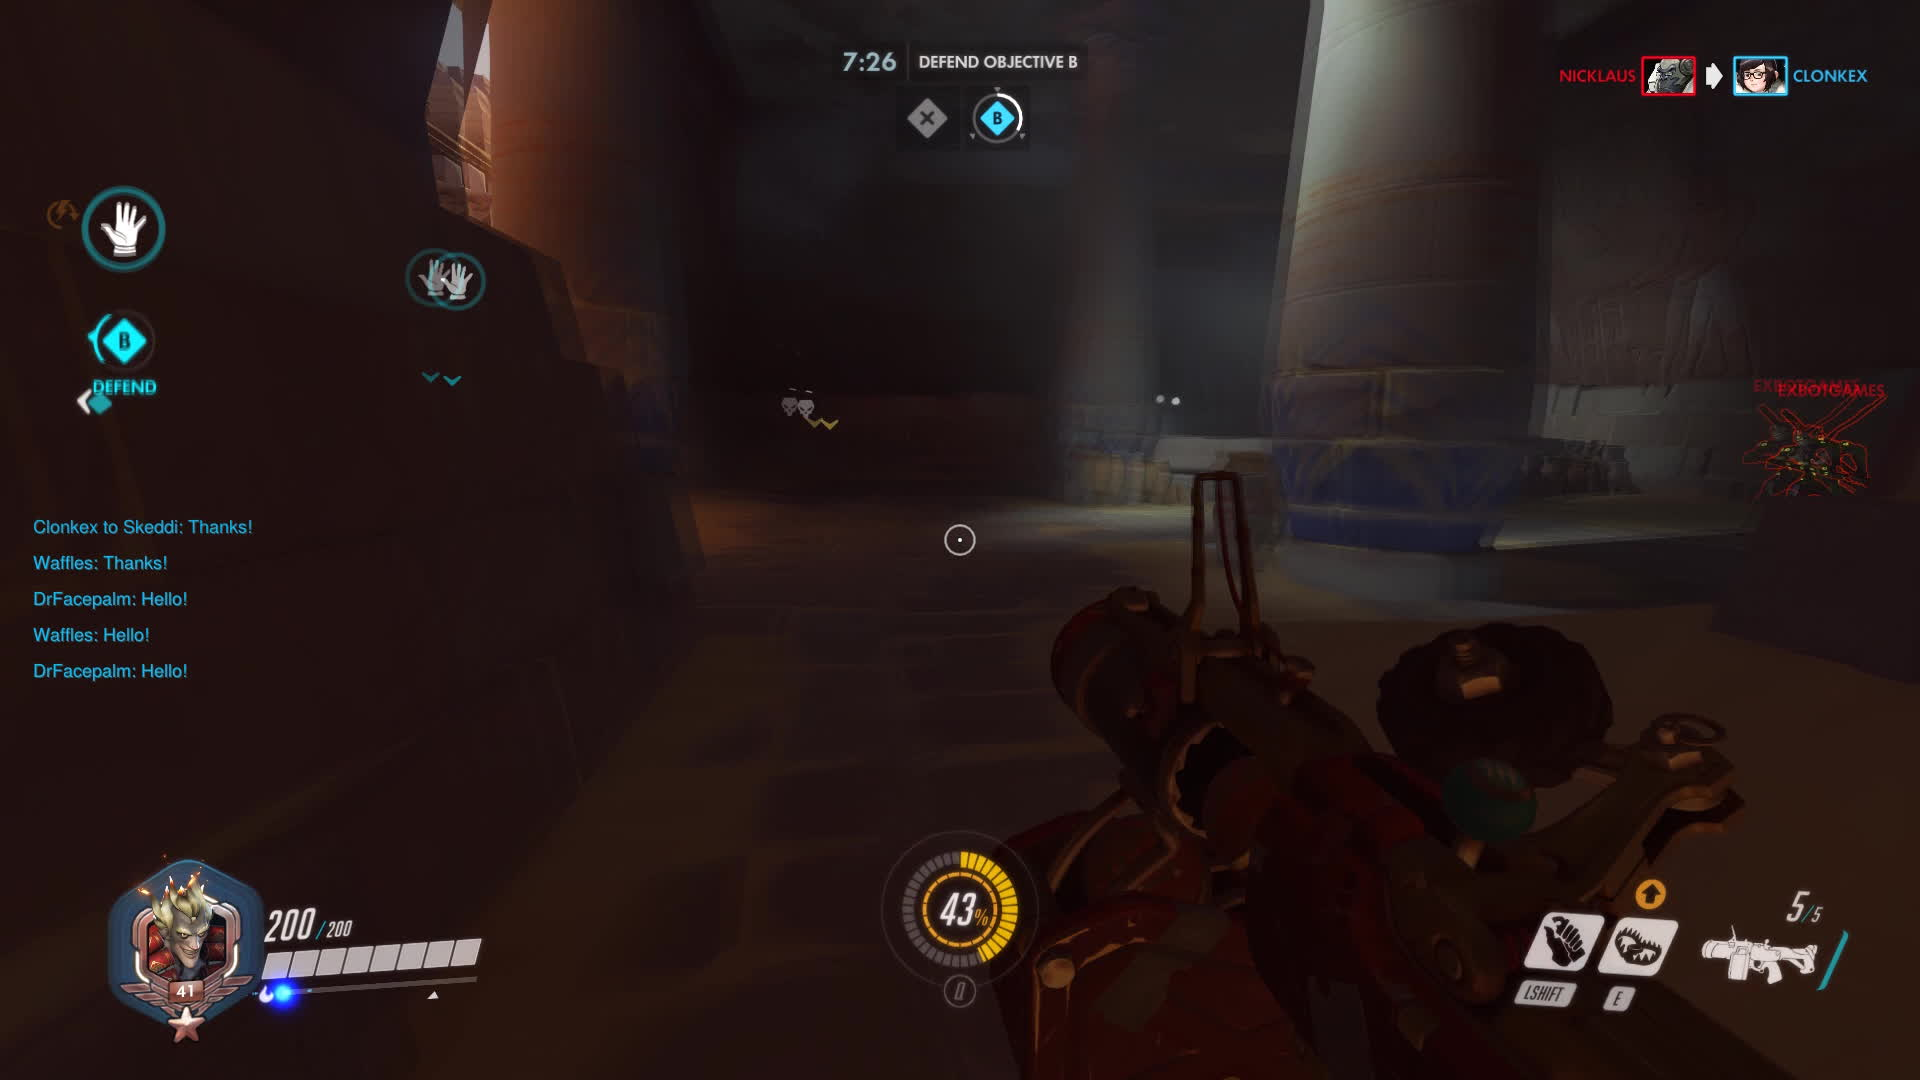 Overwatch, junkrat, overwatch, How to deal with enemy team throwers GIFs